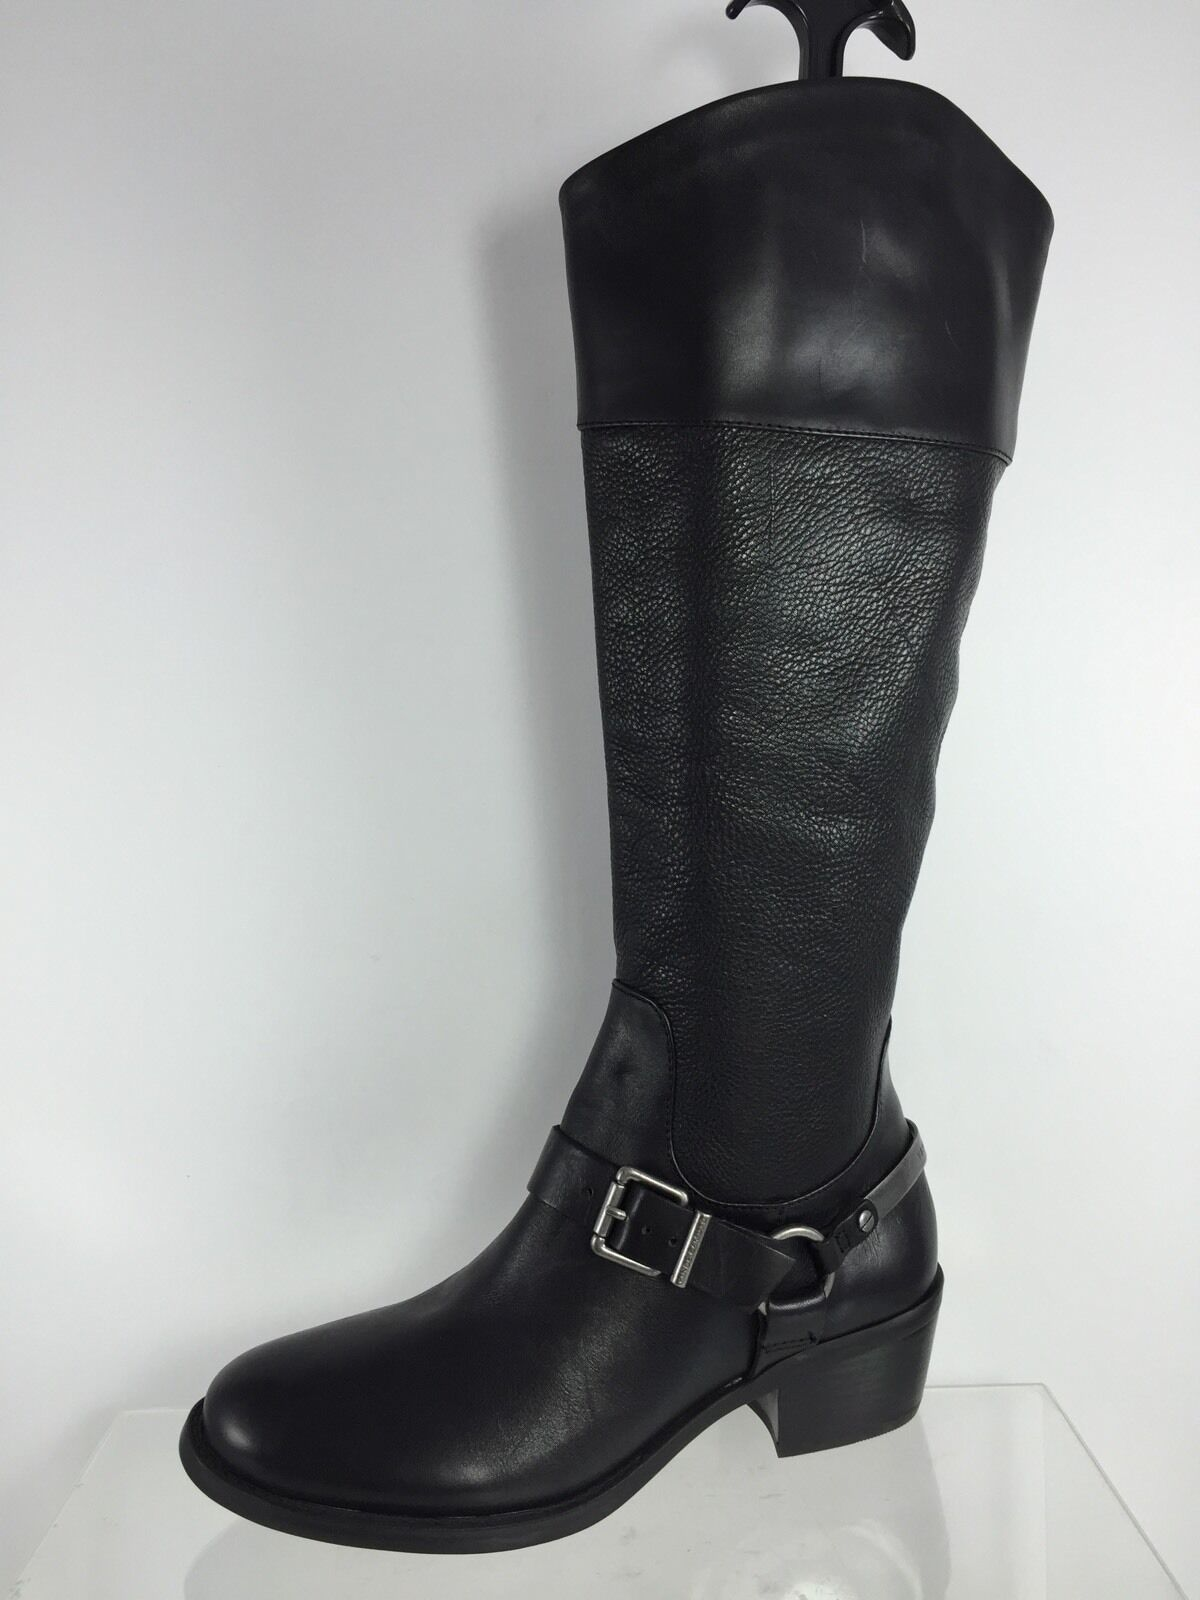 Vince Camuto Camuto Vince Womems Black Leather Boots 6.5 M 76ca7a